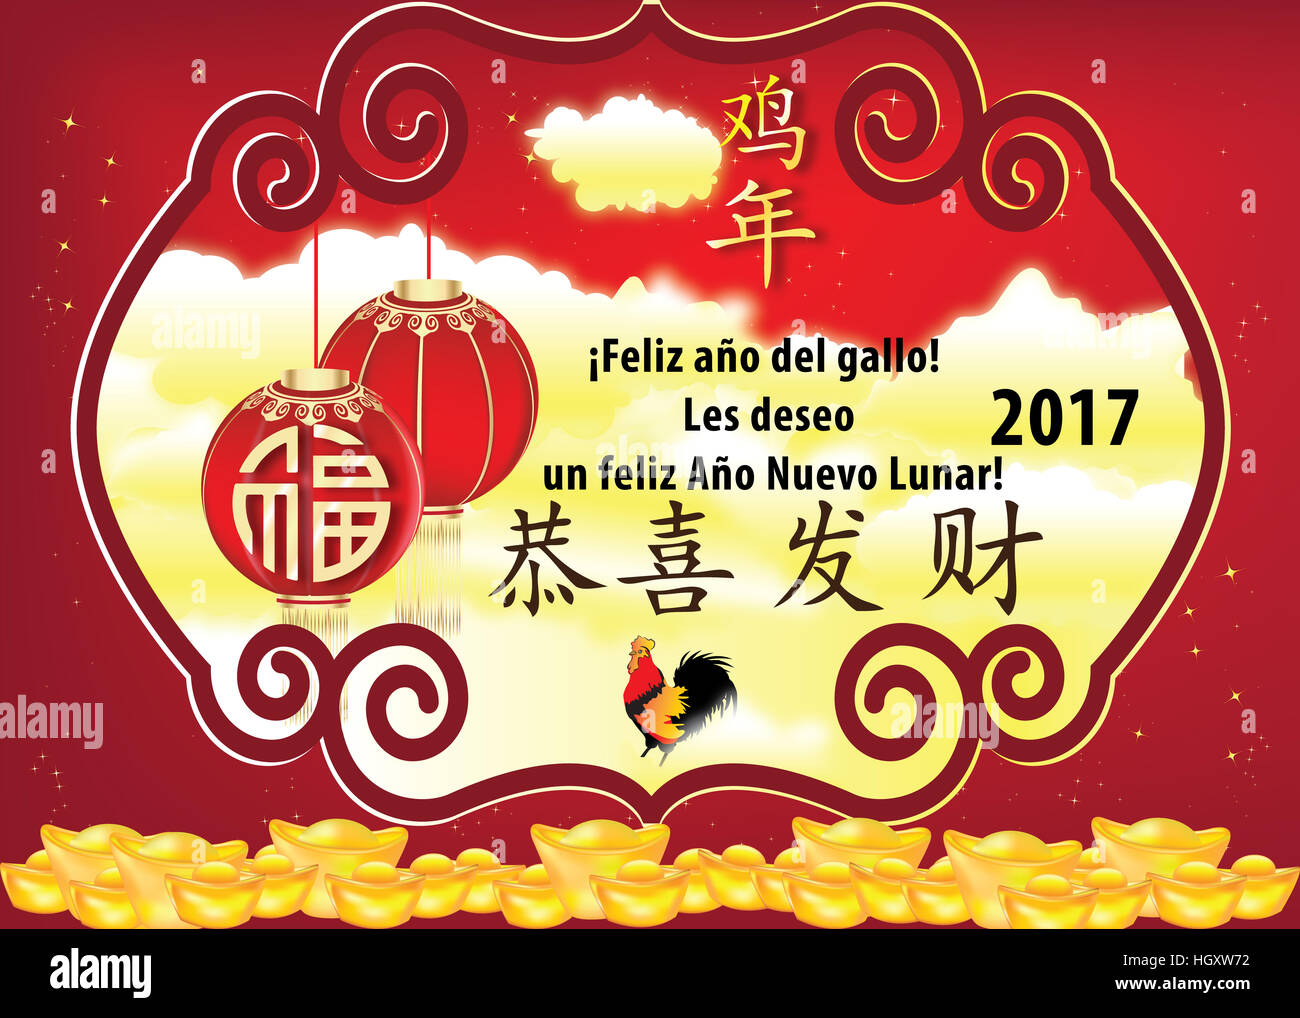 Spanish corporate greeting card for chinese new year 2017 text spanish corporate greeting card for chinese new year 2017 text we wish you a happy lunar new year spanish year of rooster kristyandbryce Images